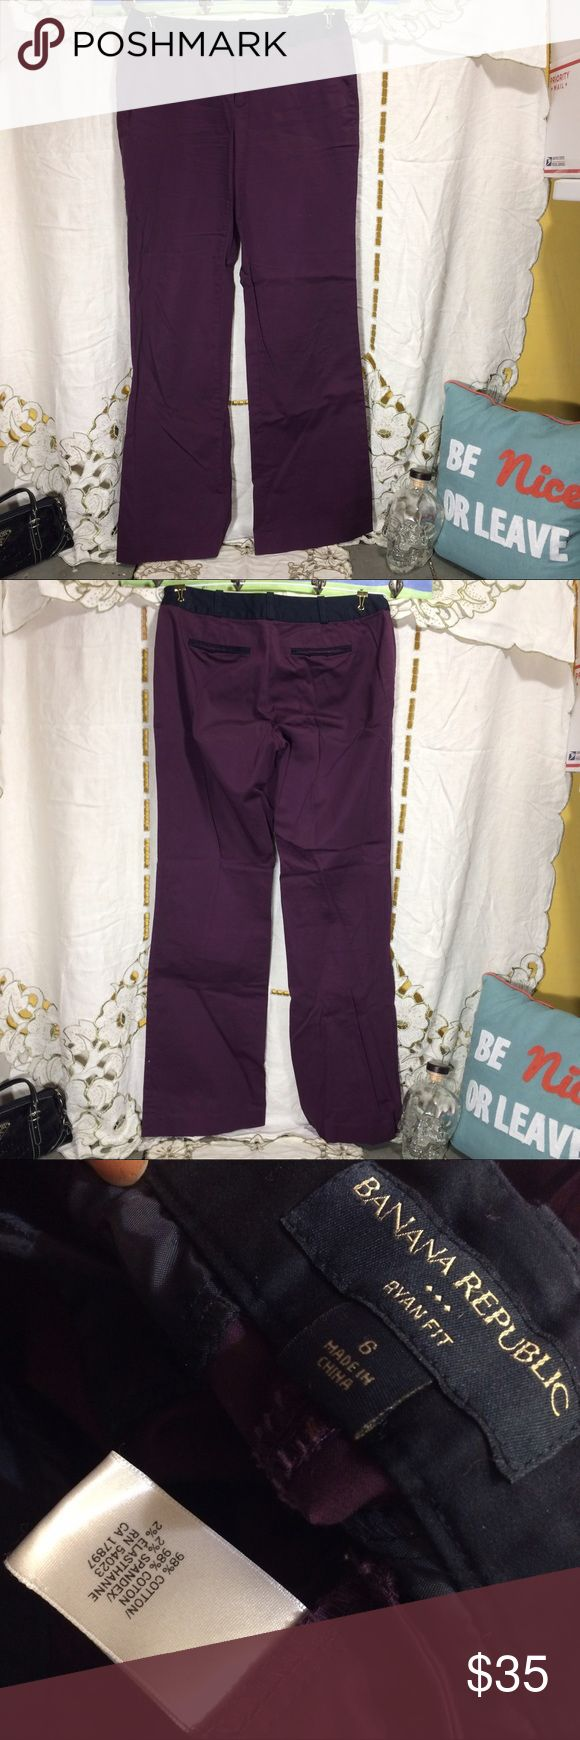 """Purple banana republic trousers nwot Woman's size 6 banana republic trousers new without tags. These are more of a plum purple and are trimmed in black. Mock back pockets. Has front pockets but they are still greased shut. The waist measures 16"""" flat across, the rise is 8 1/2"""" and the inseam is 32"""". Banana Republic Pants Trousers"""